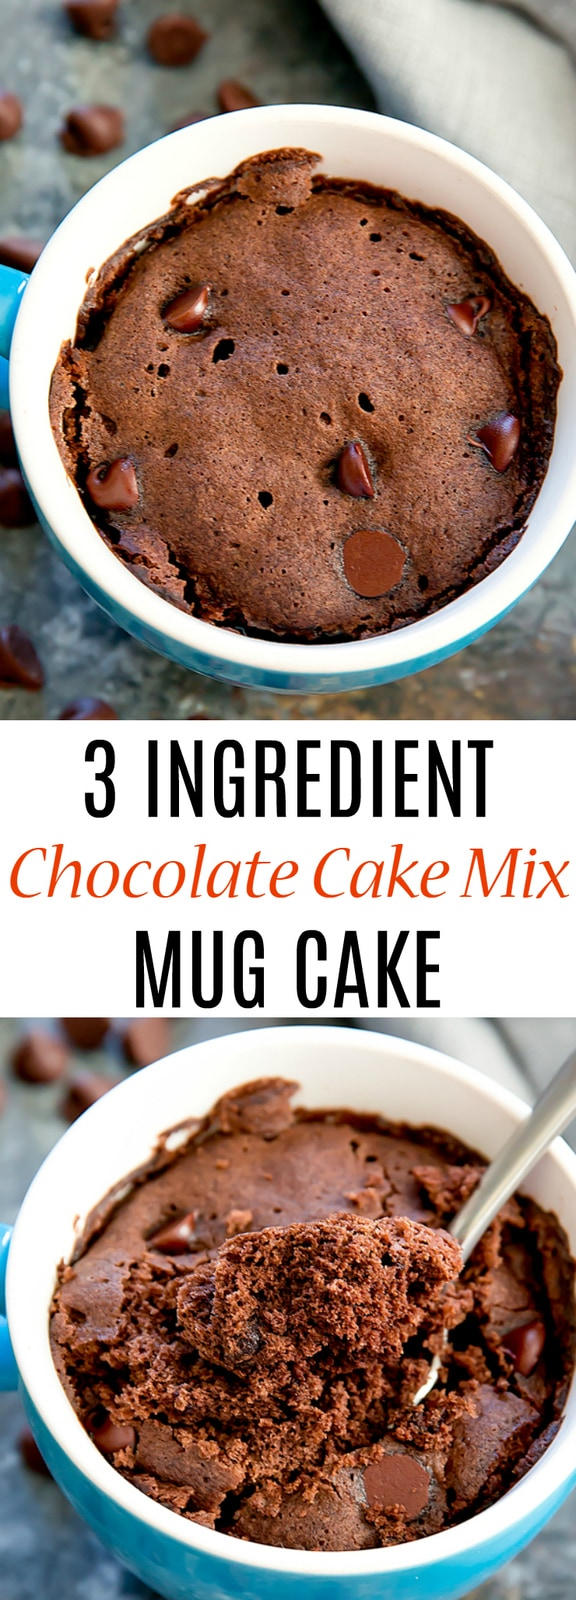 3 Ingredient Chocolate Cake Mix Mug Cake (Eggless). No need for eggs, oil or having to make an entire cake. Cooks in 1 minute in the microwave!